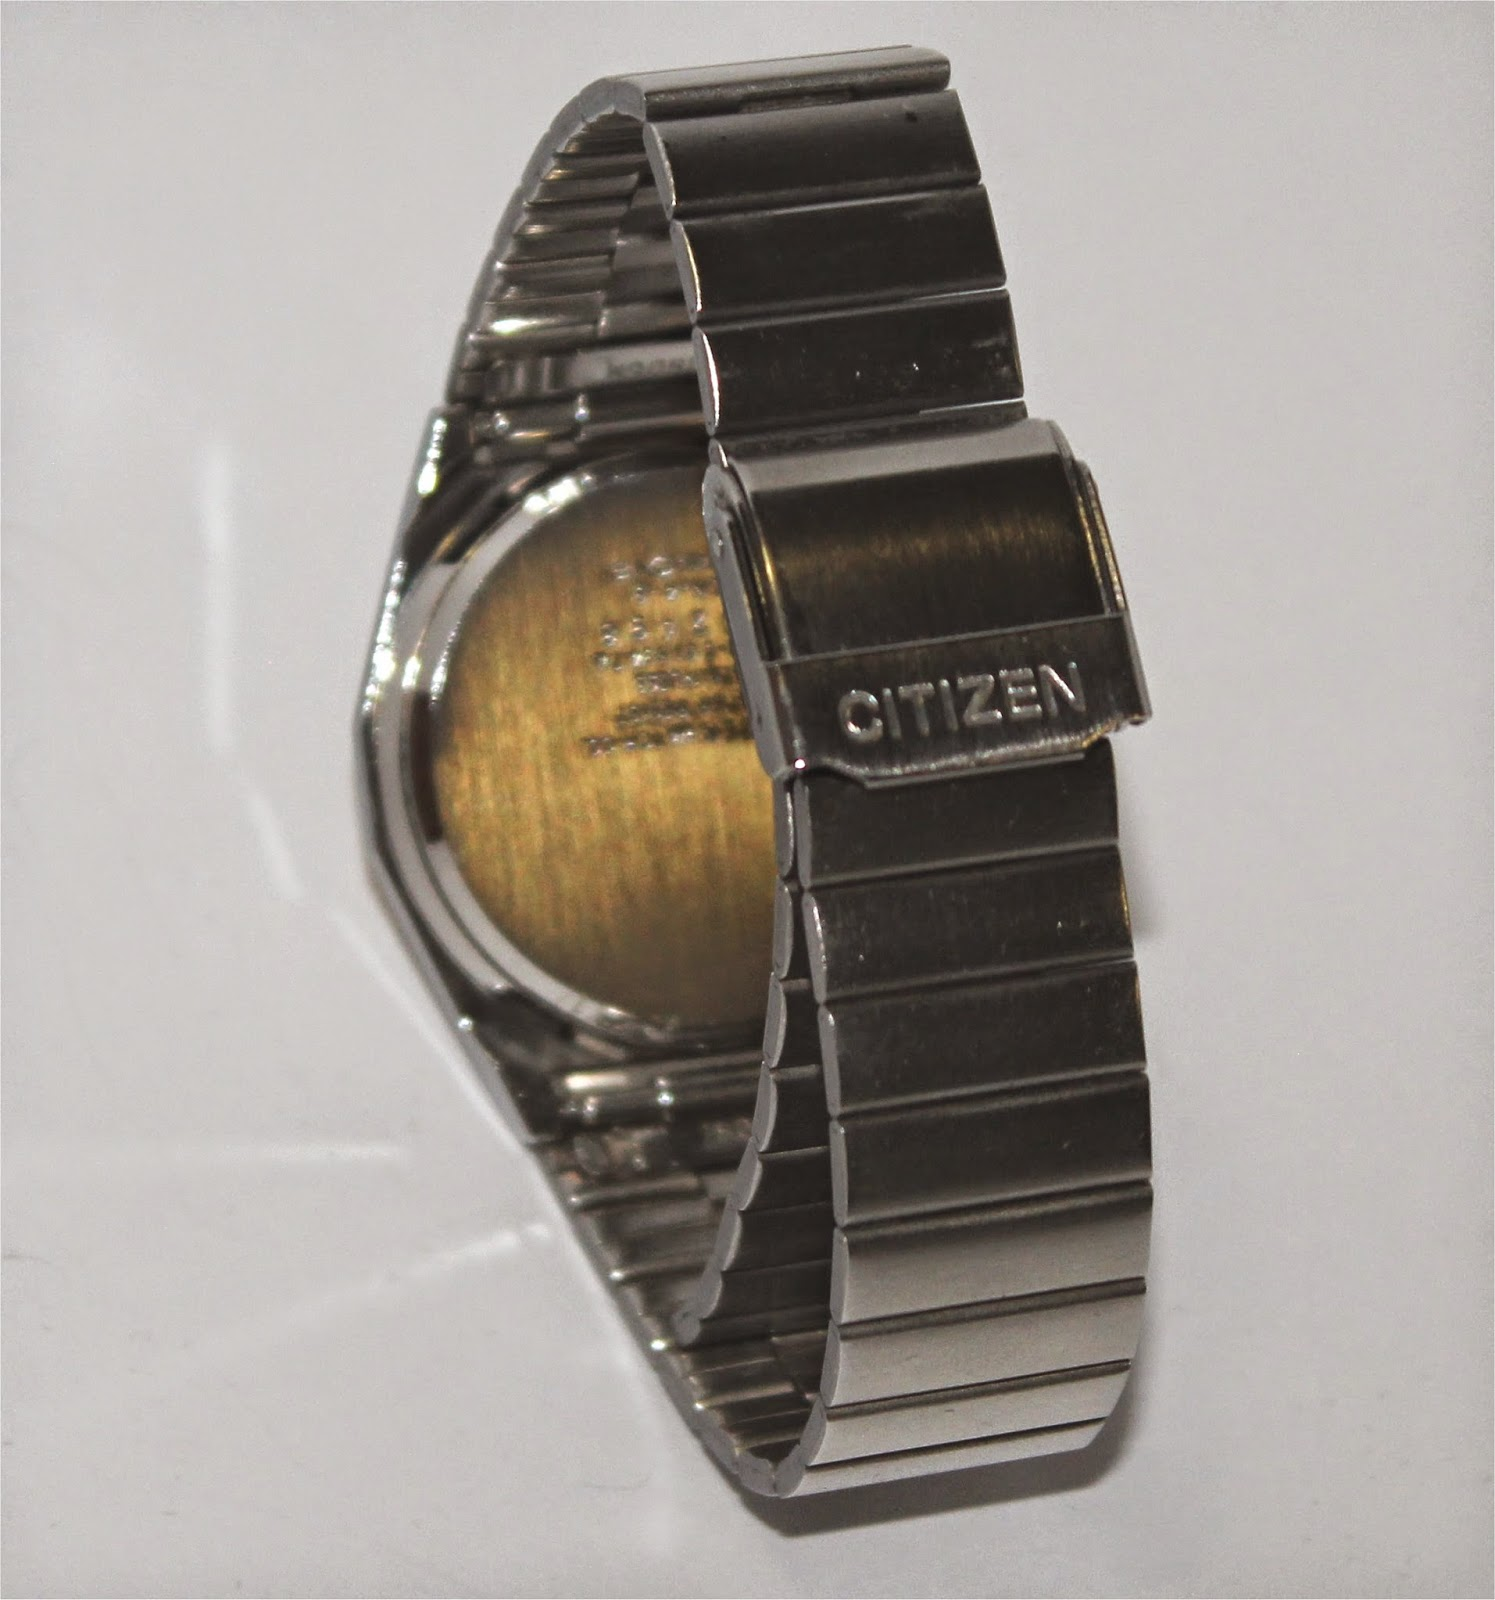 RELOJES CLÁSICOS ANTIGUOS OLD AND CLASSIC VINTAGE WATCH